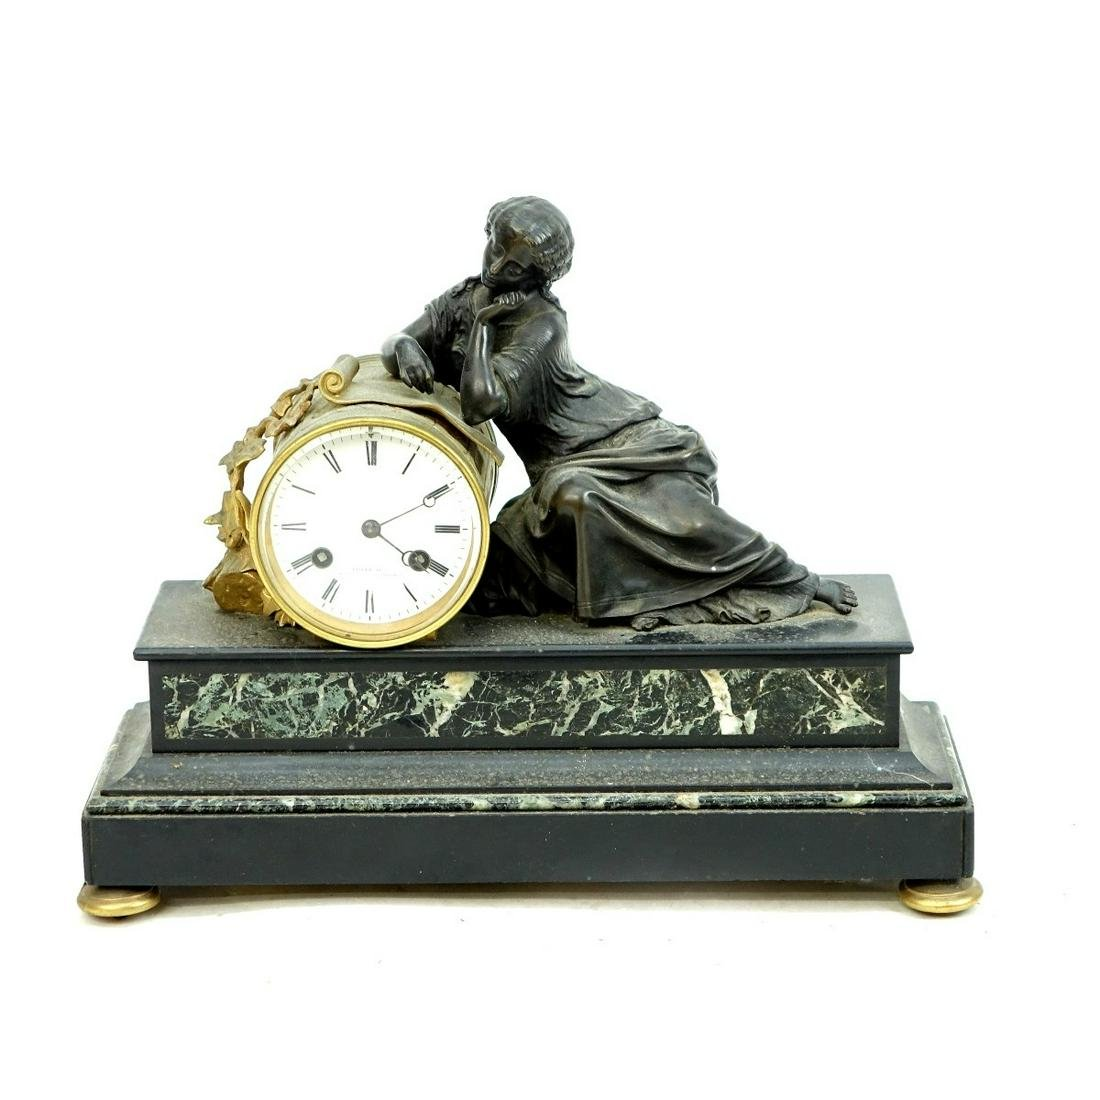 19th C. French Loyer Mantle Clock